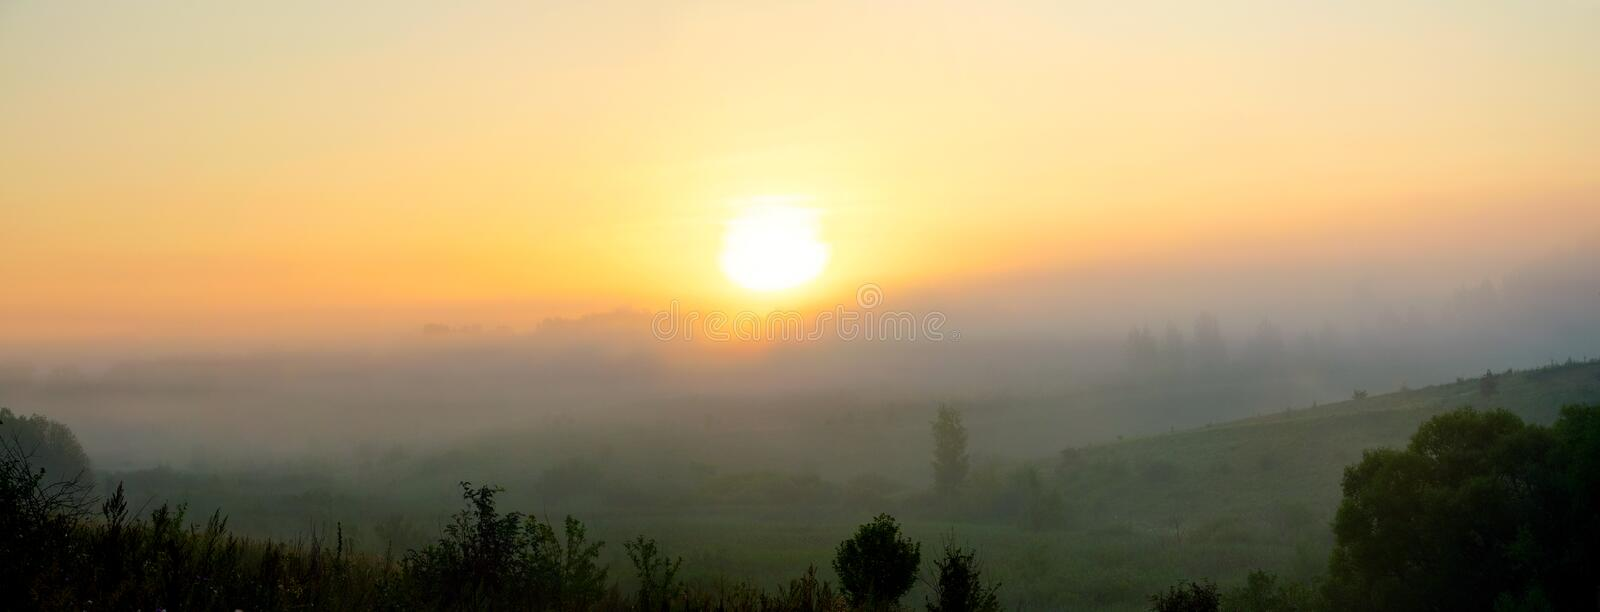 Sunny summer landscape with green hills covered by morning fog. Beautiful foggy scene with rising sun stock image